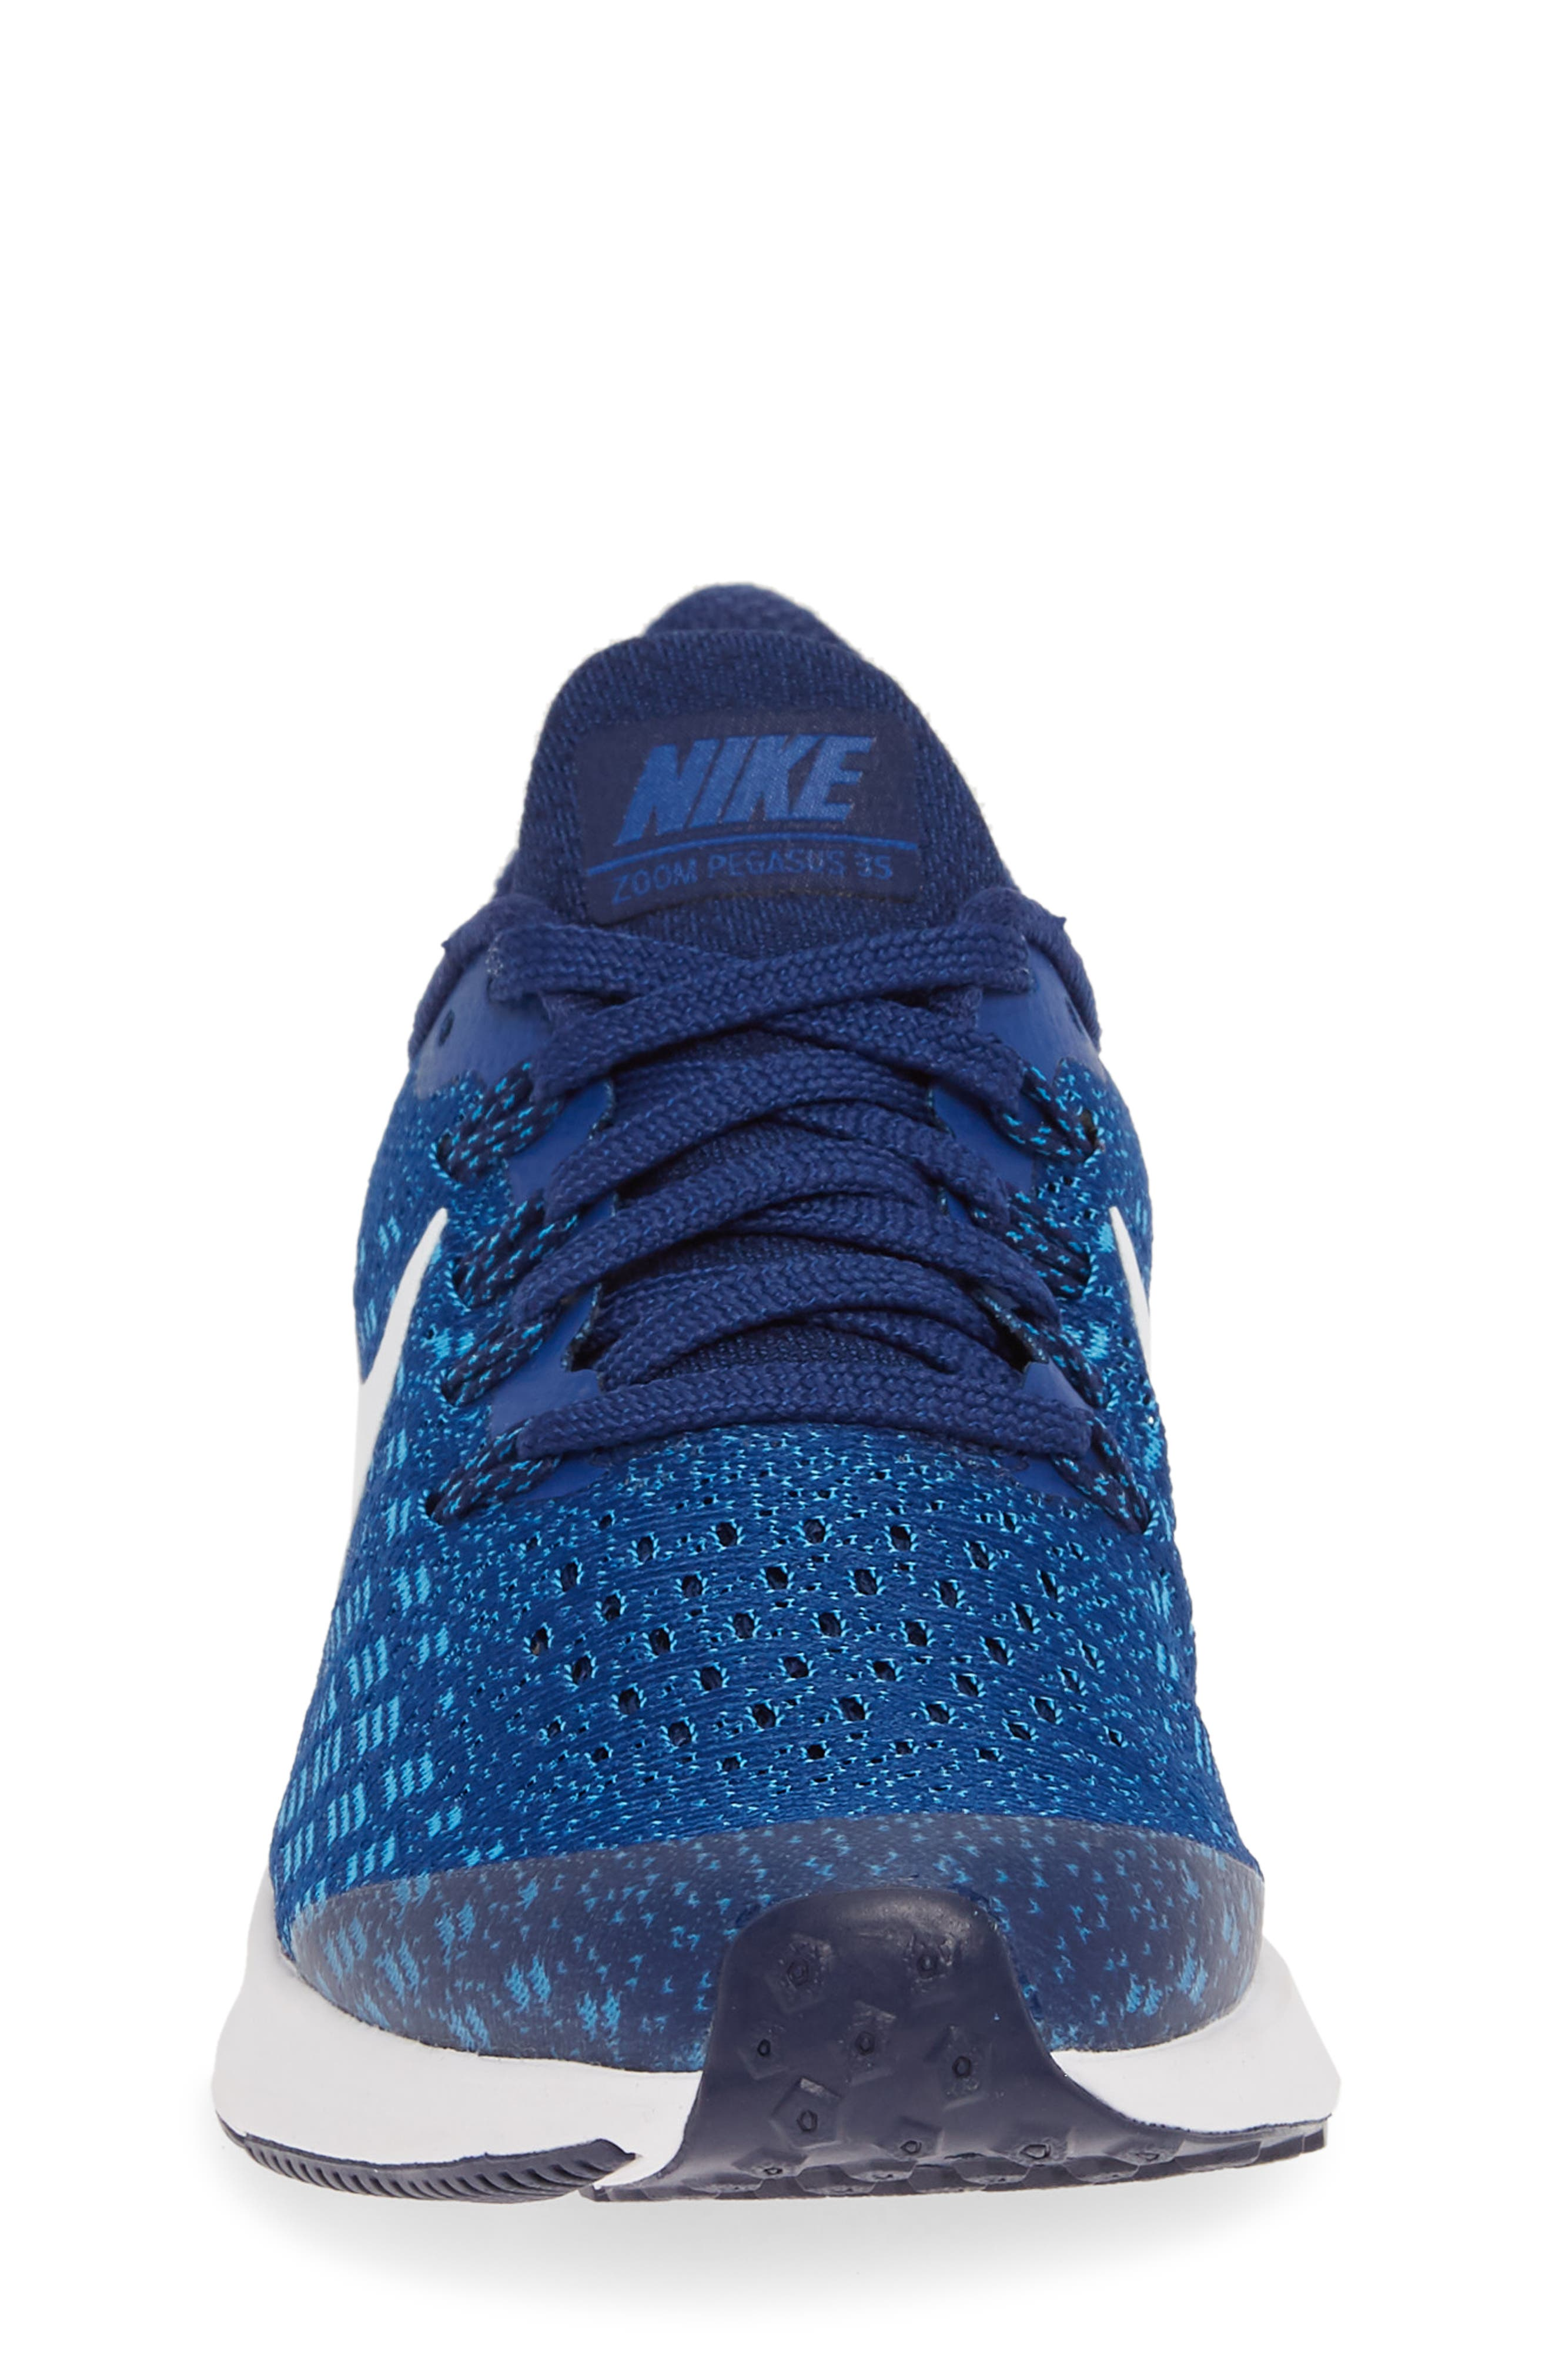 NIKE, Air Zoom Pegasus 35 Sneaker, Alternate thumbnail 4, color, INDIGO FORCE/ WHITE-BLUE-BLUE